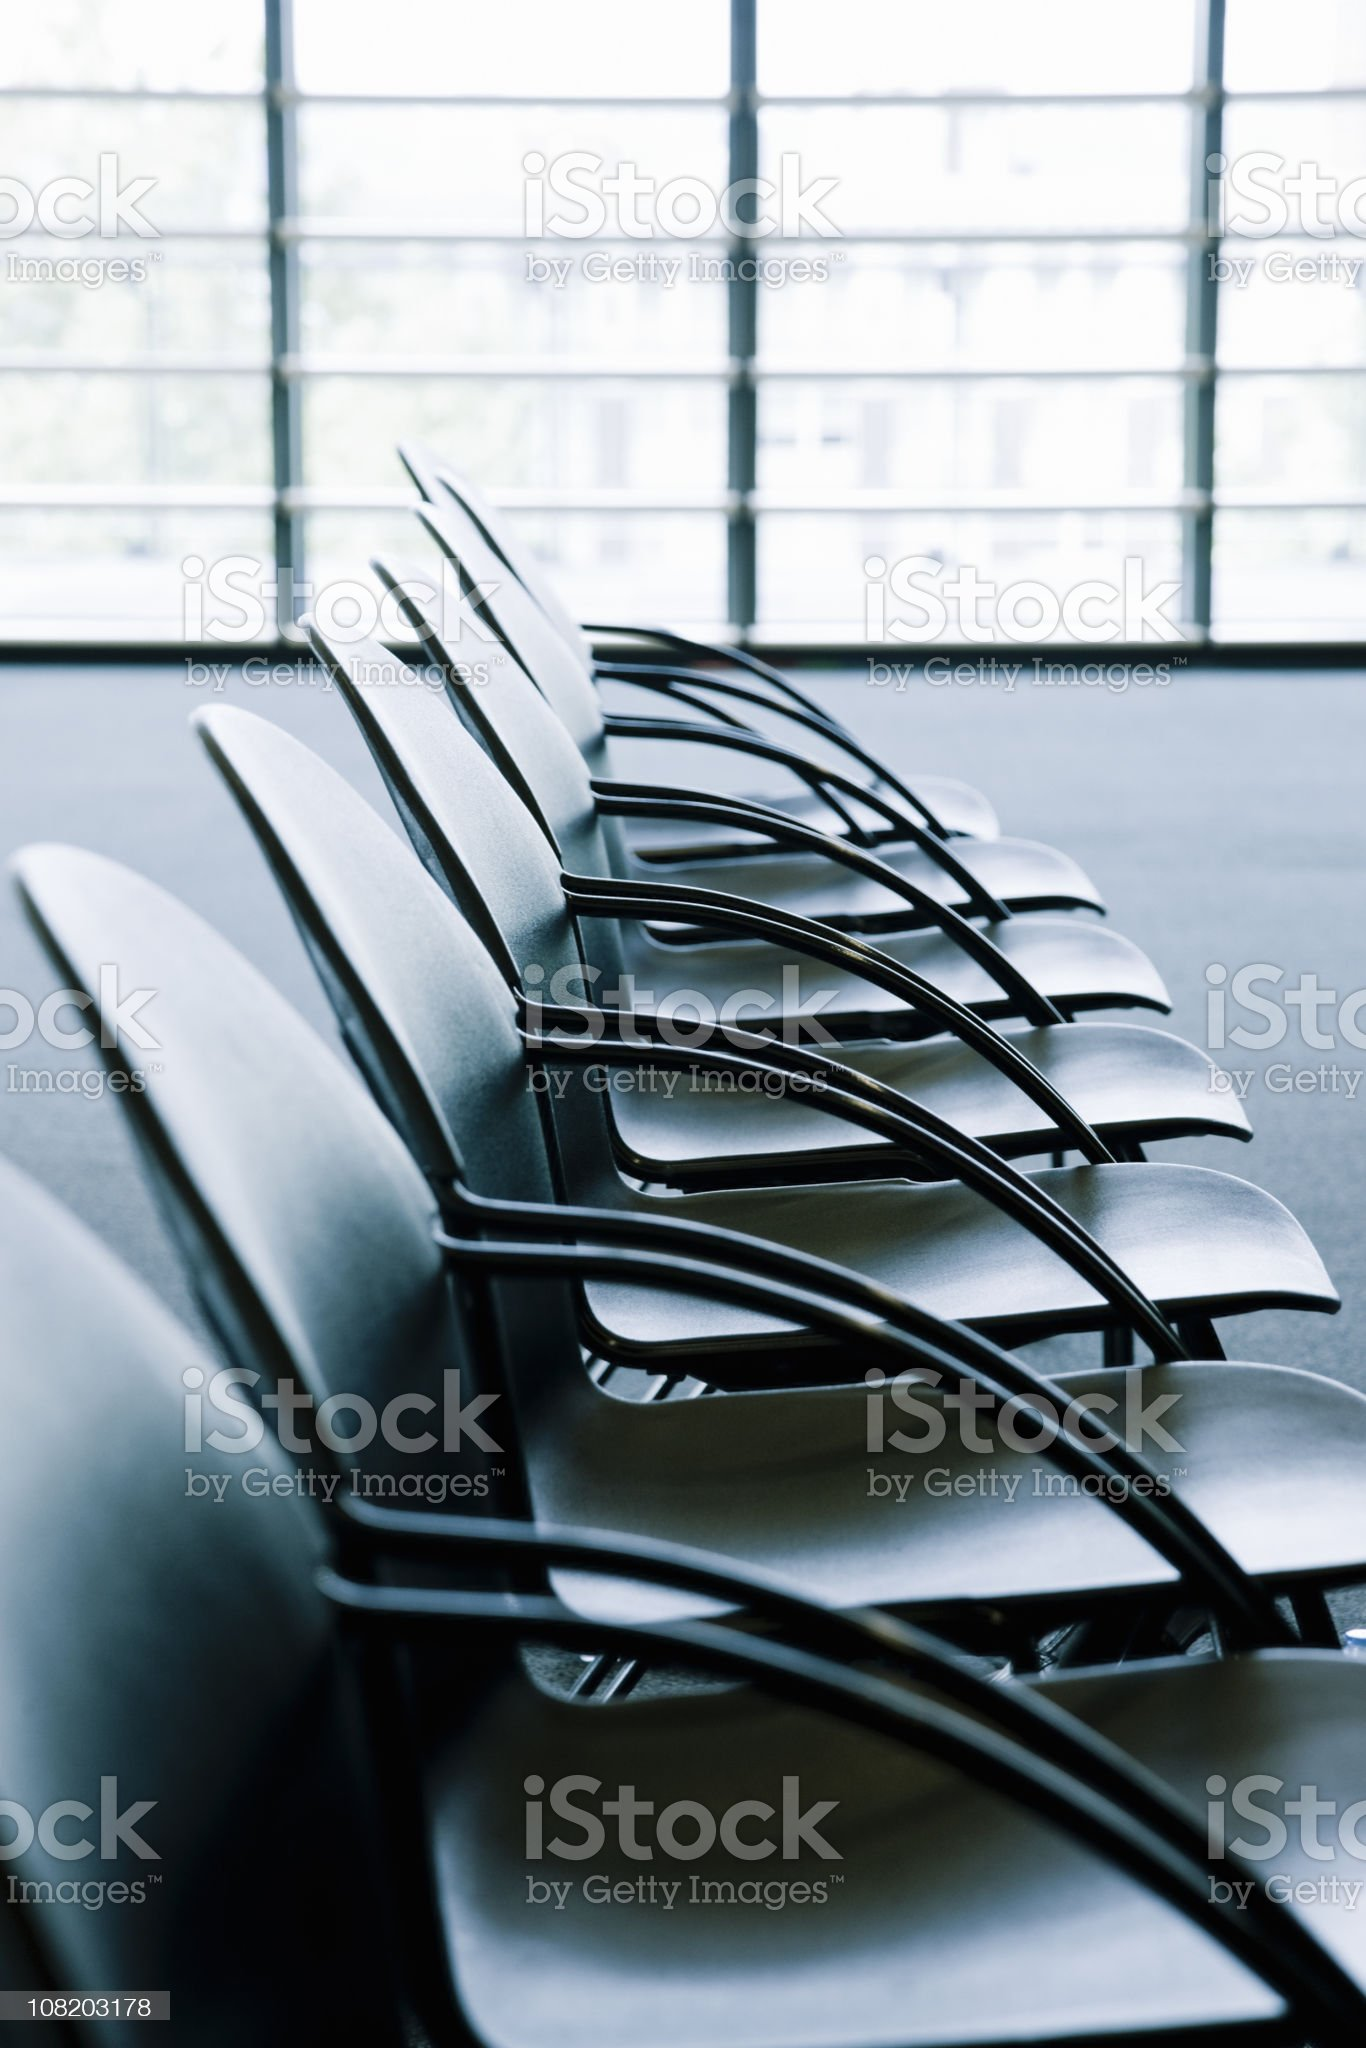 Conference Room Empty Seat royalty-free stock photo